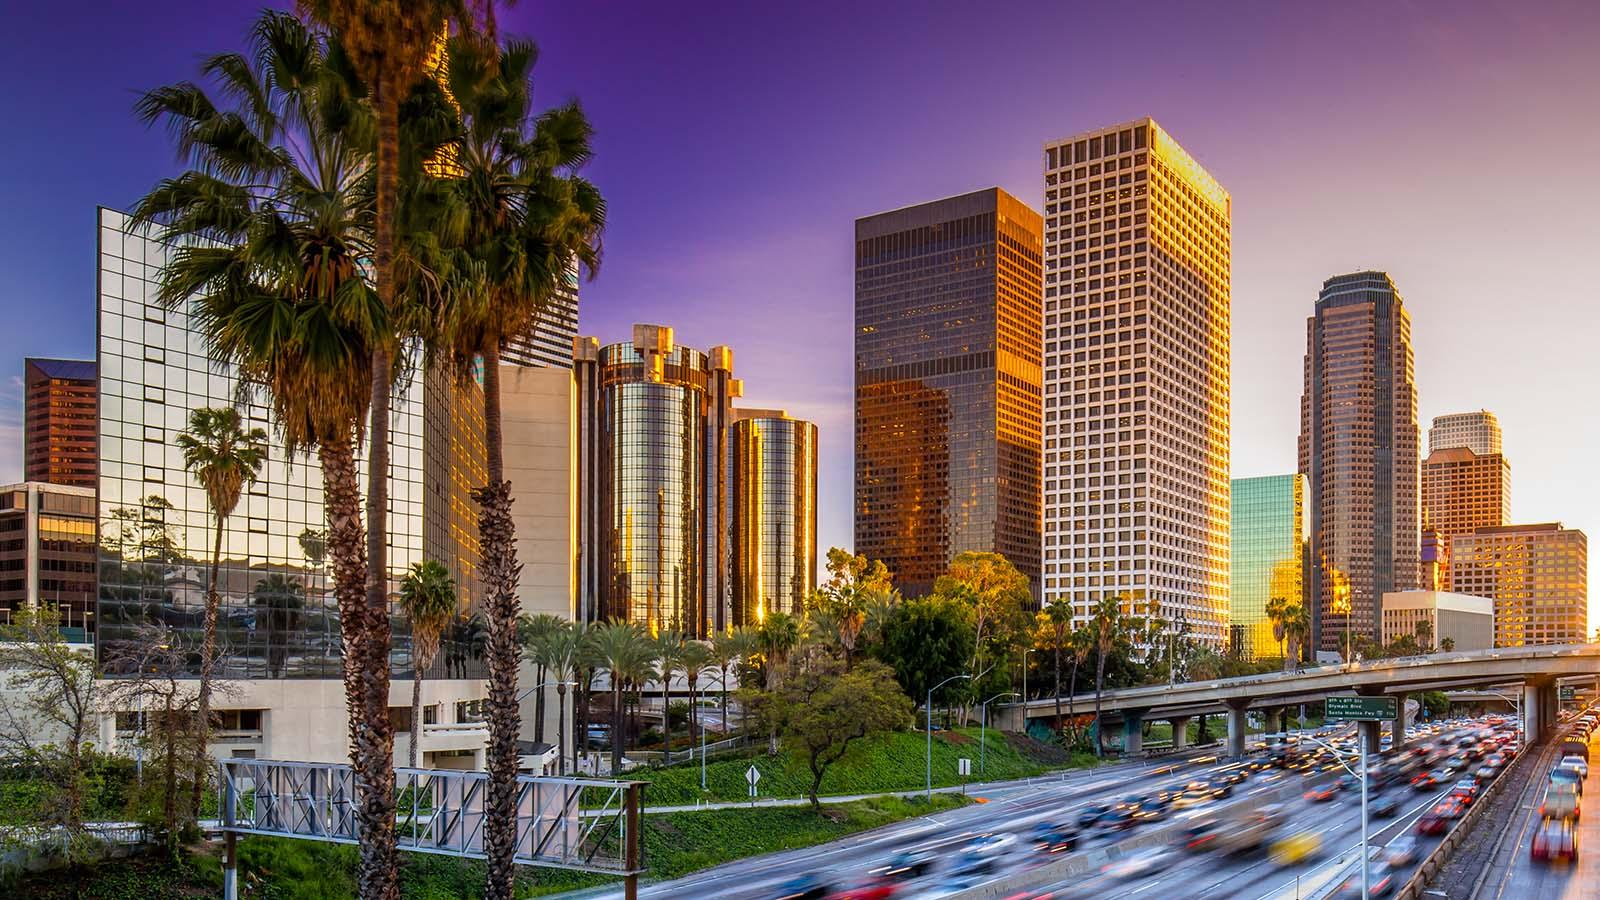 Los Angeles is home to NASIS, a company offering quality real estate investment properties